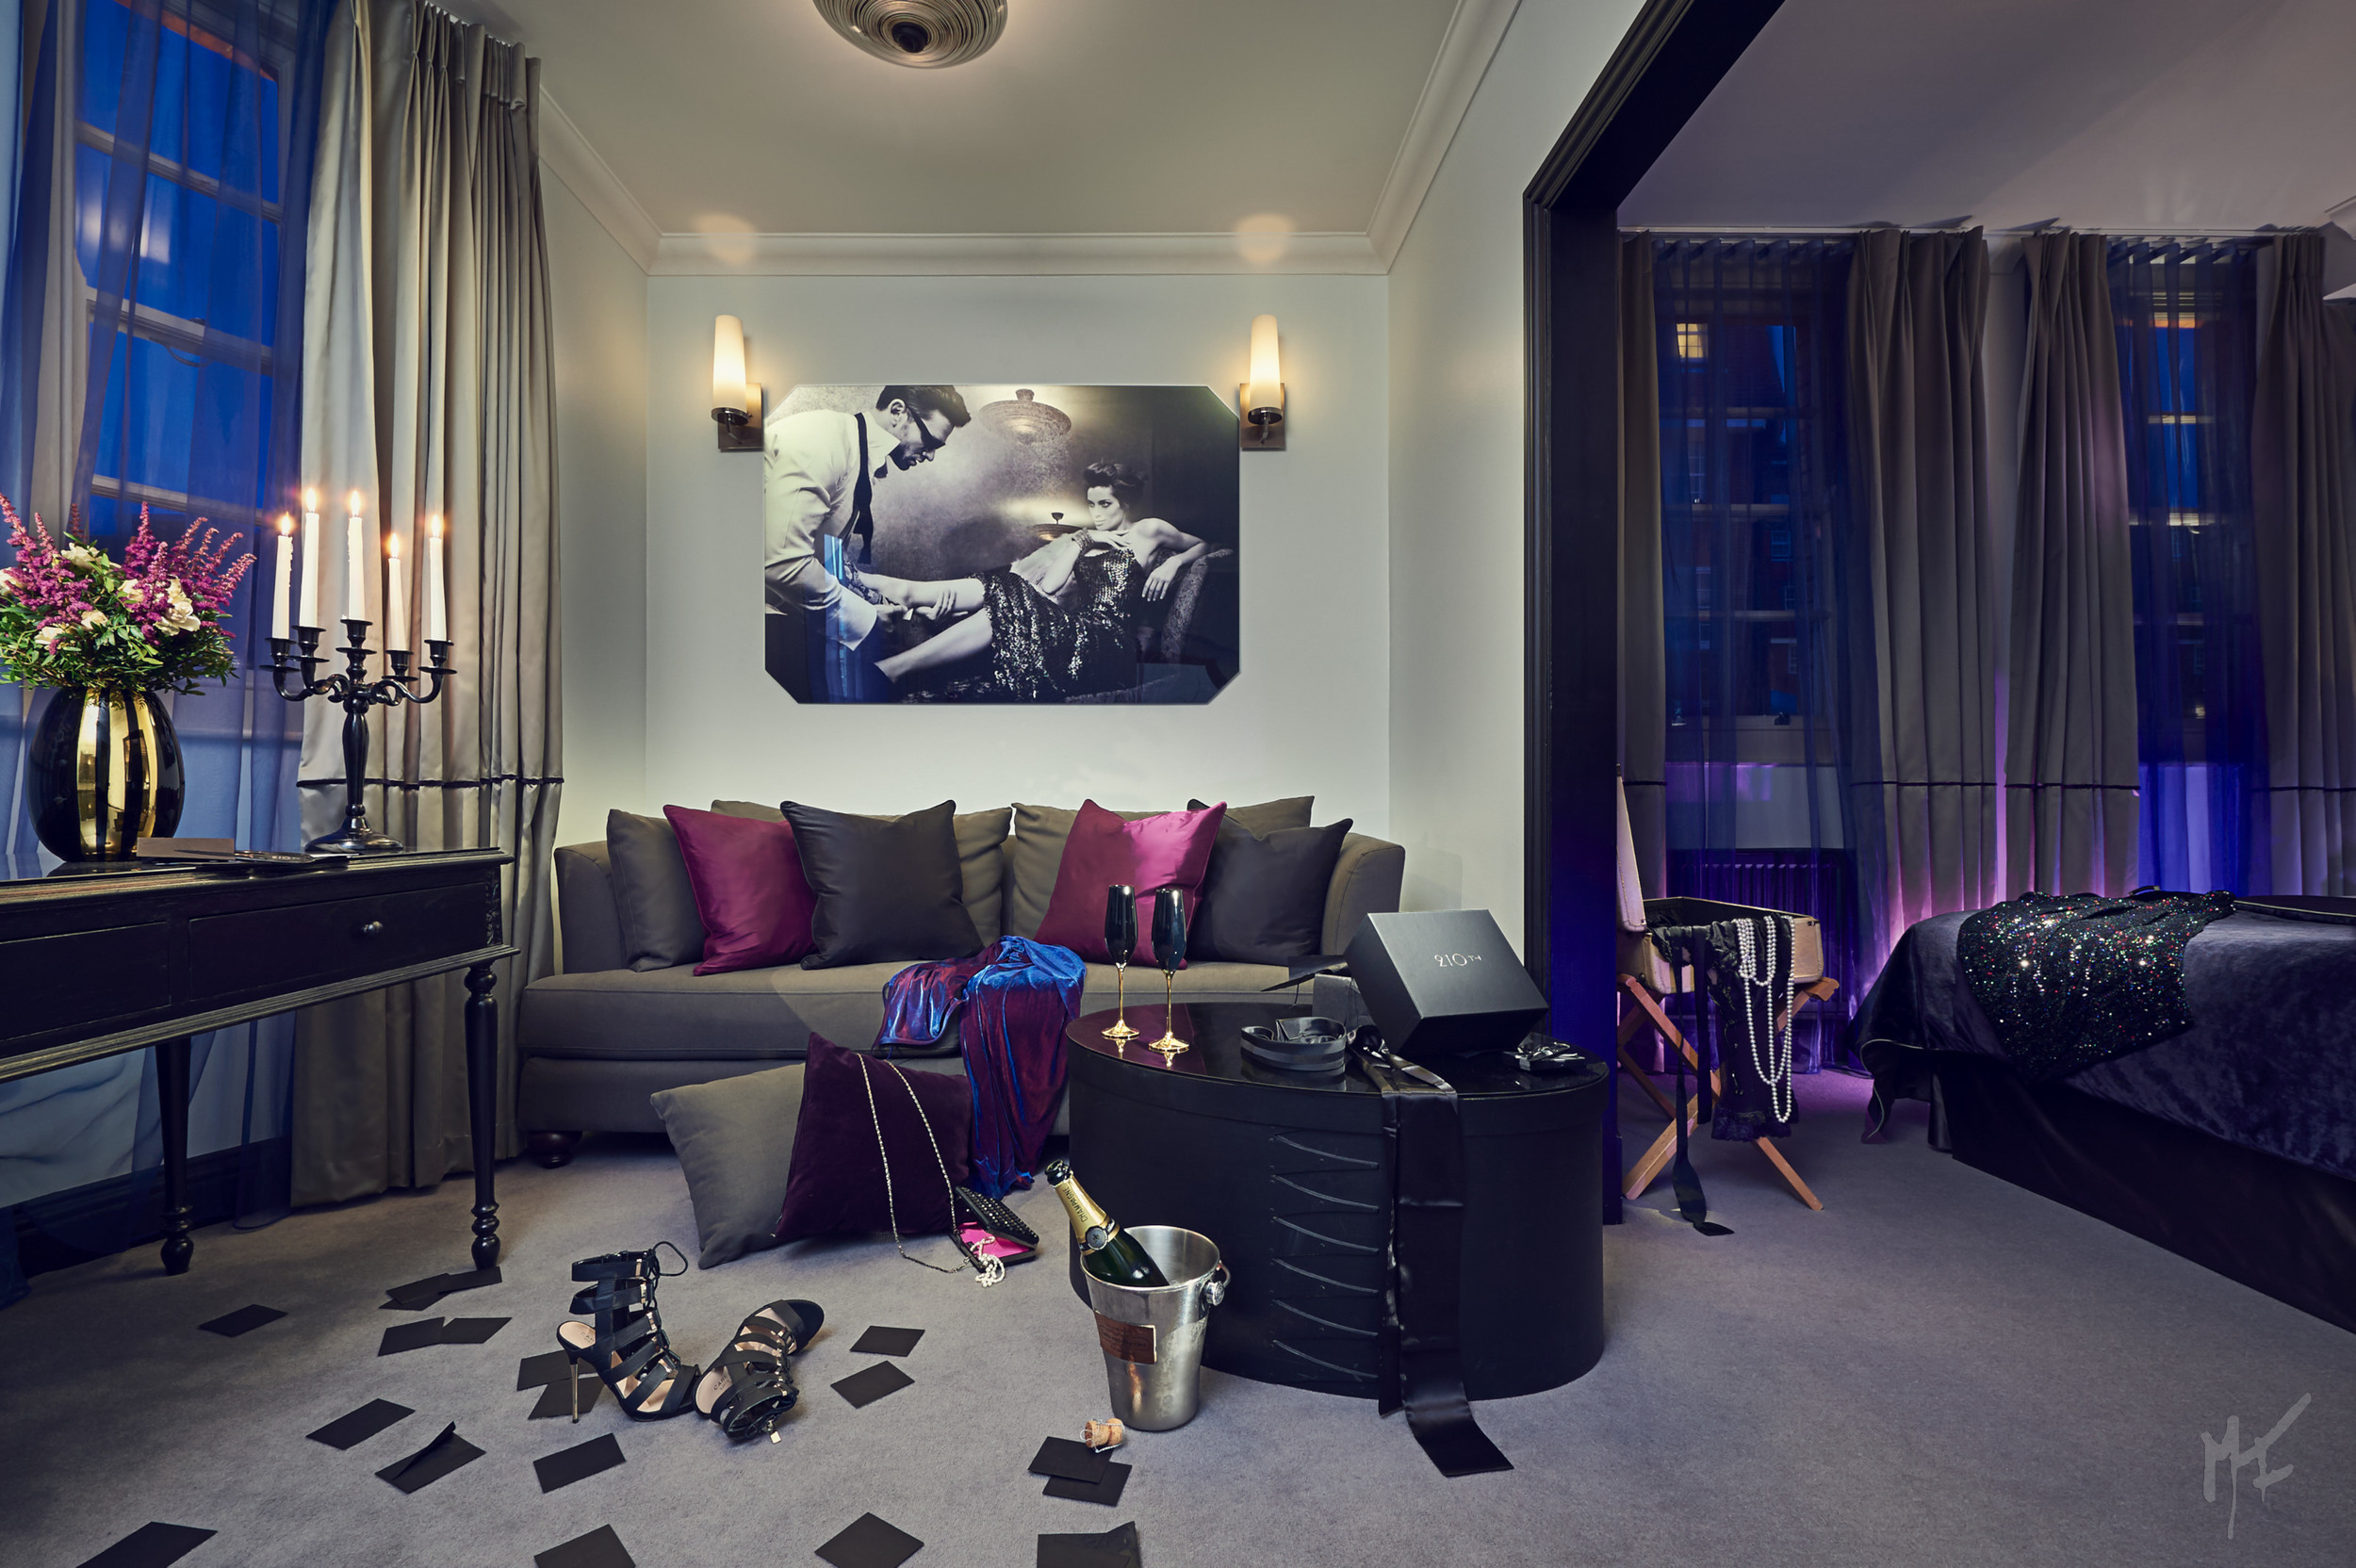 210th suite at MyHotels Chelsea